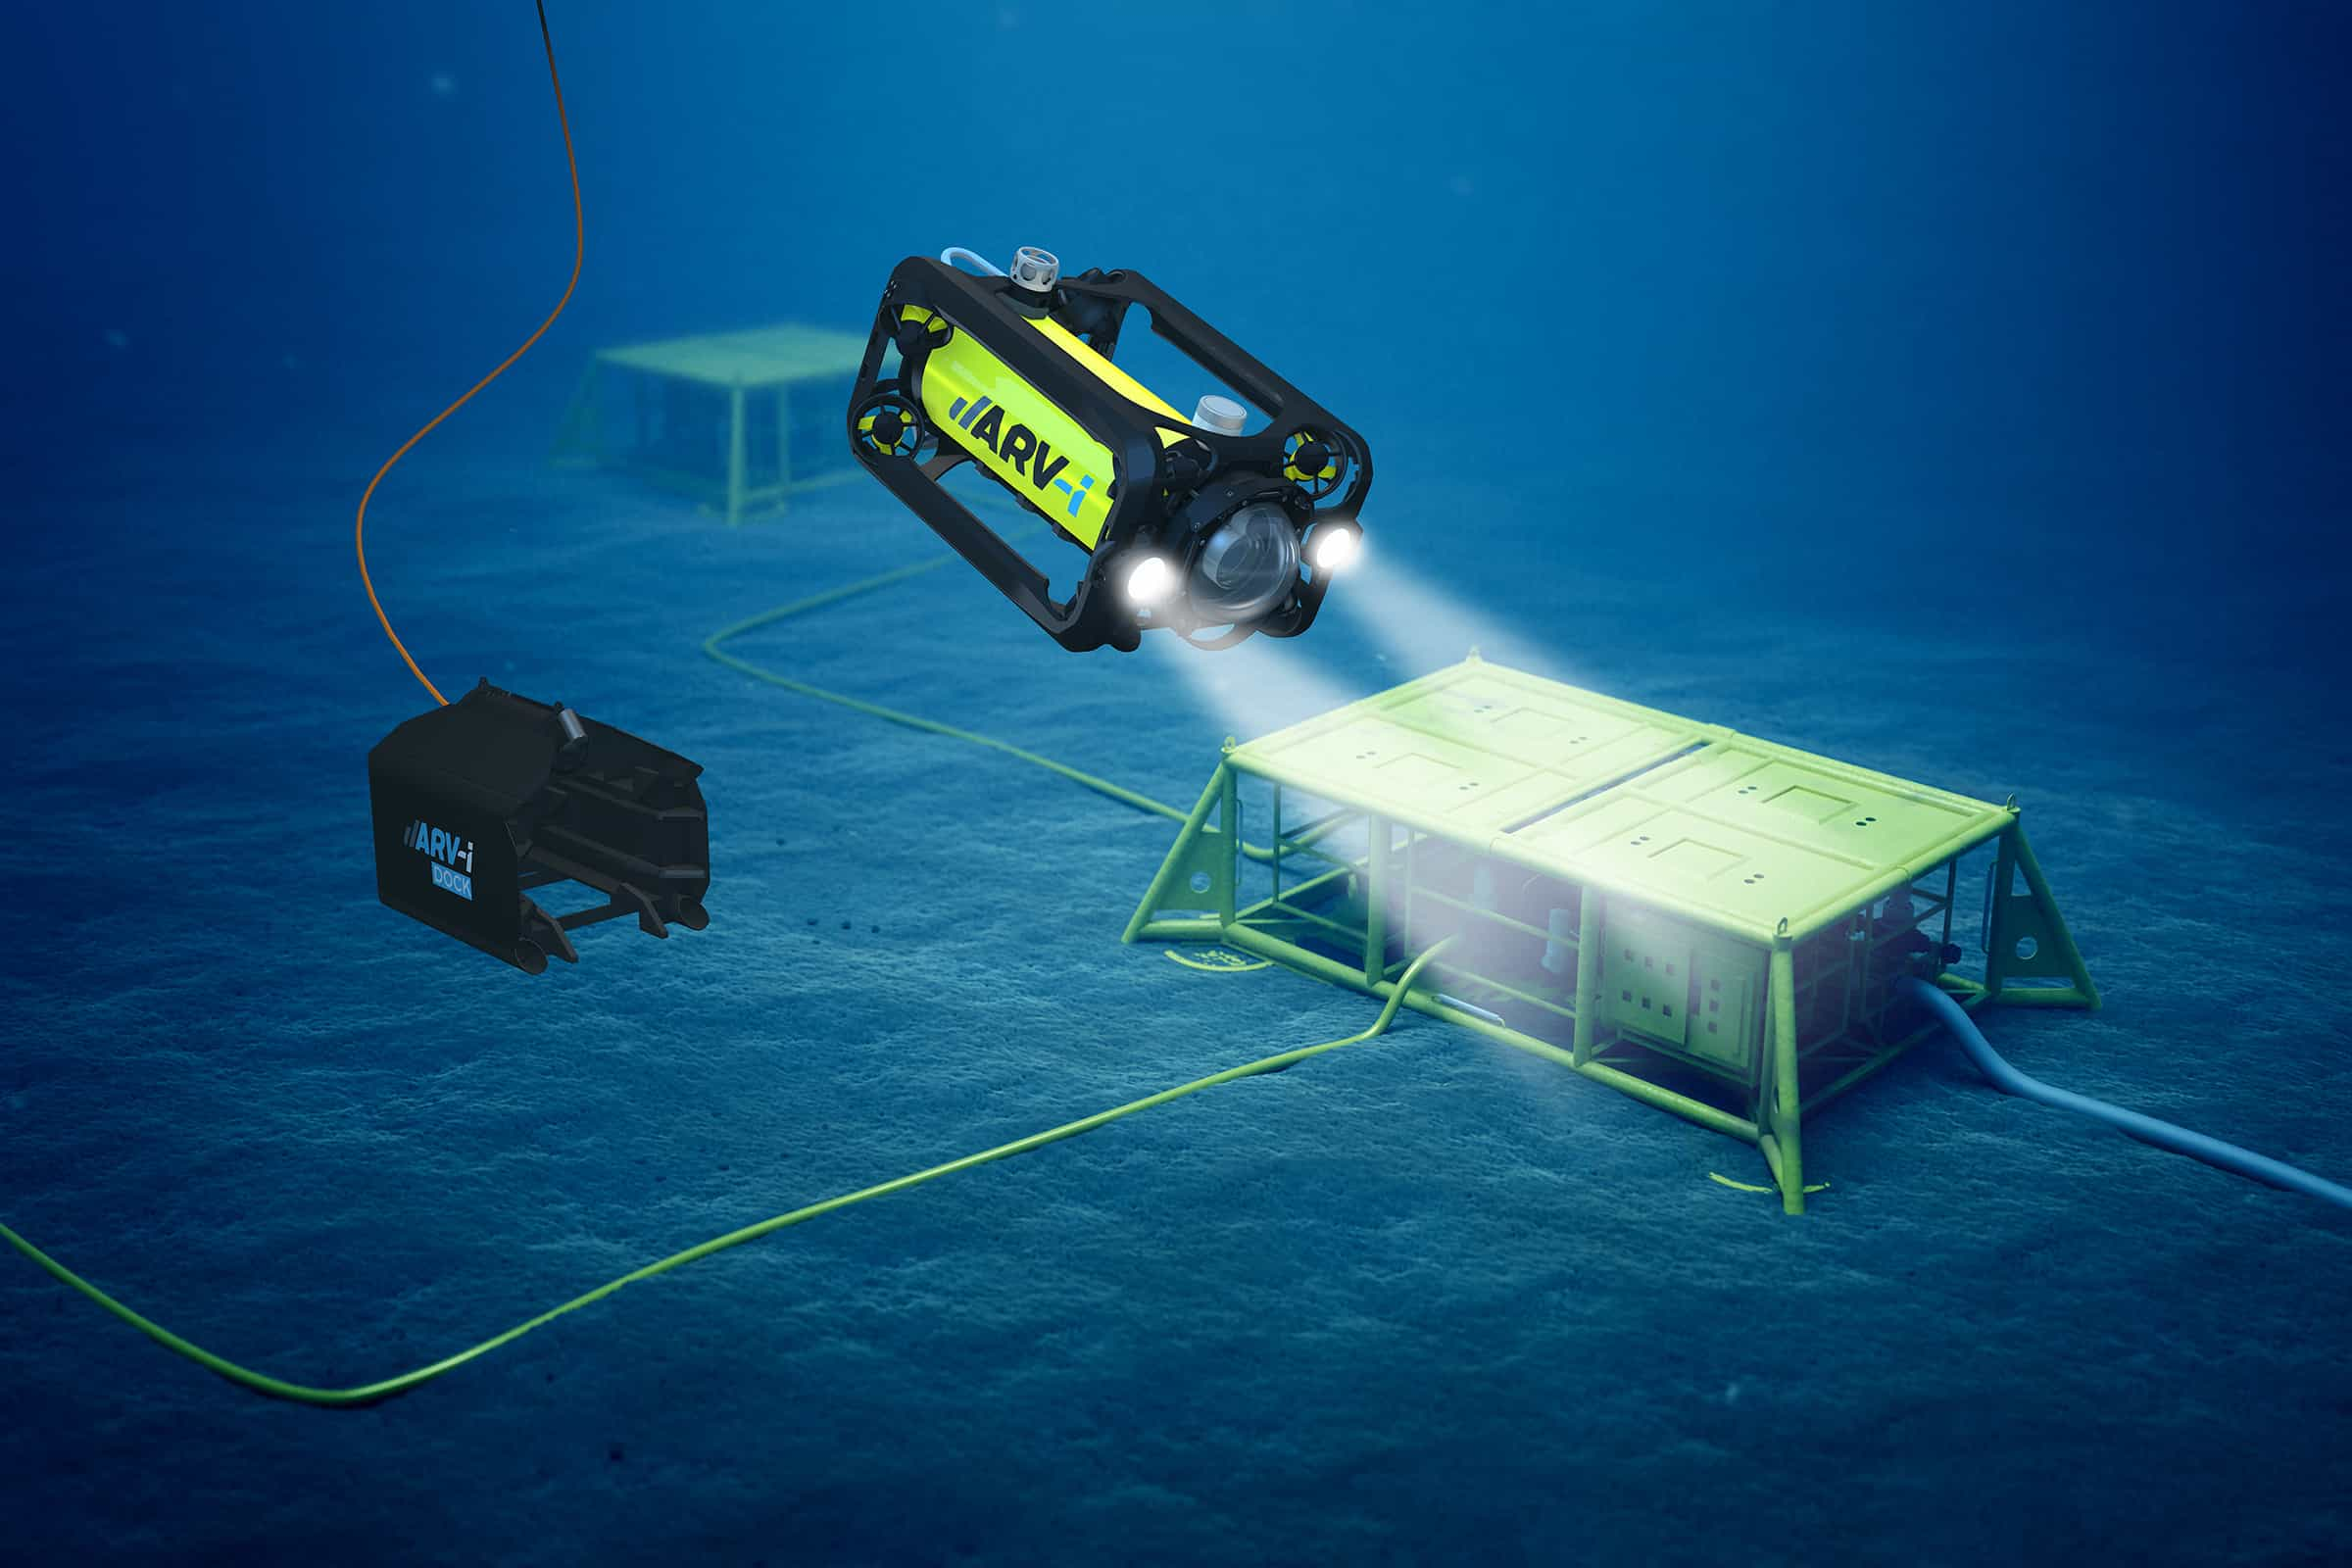 New Class of Underwater Observation Vehicle Launched